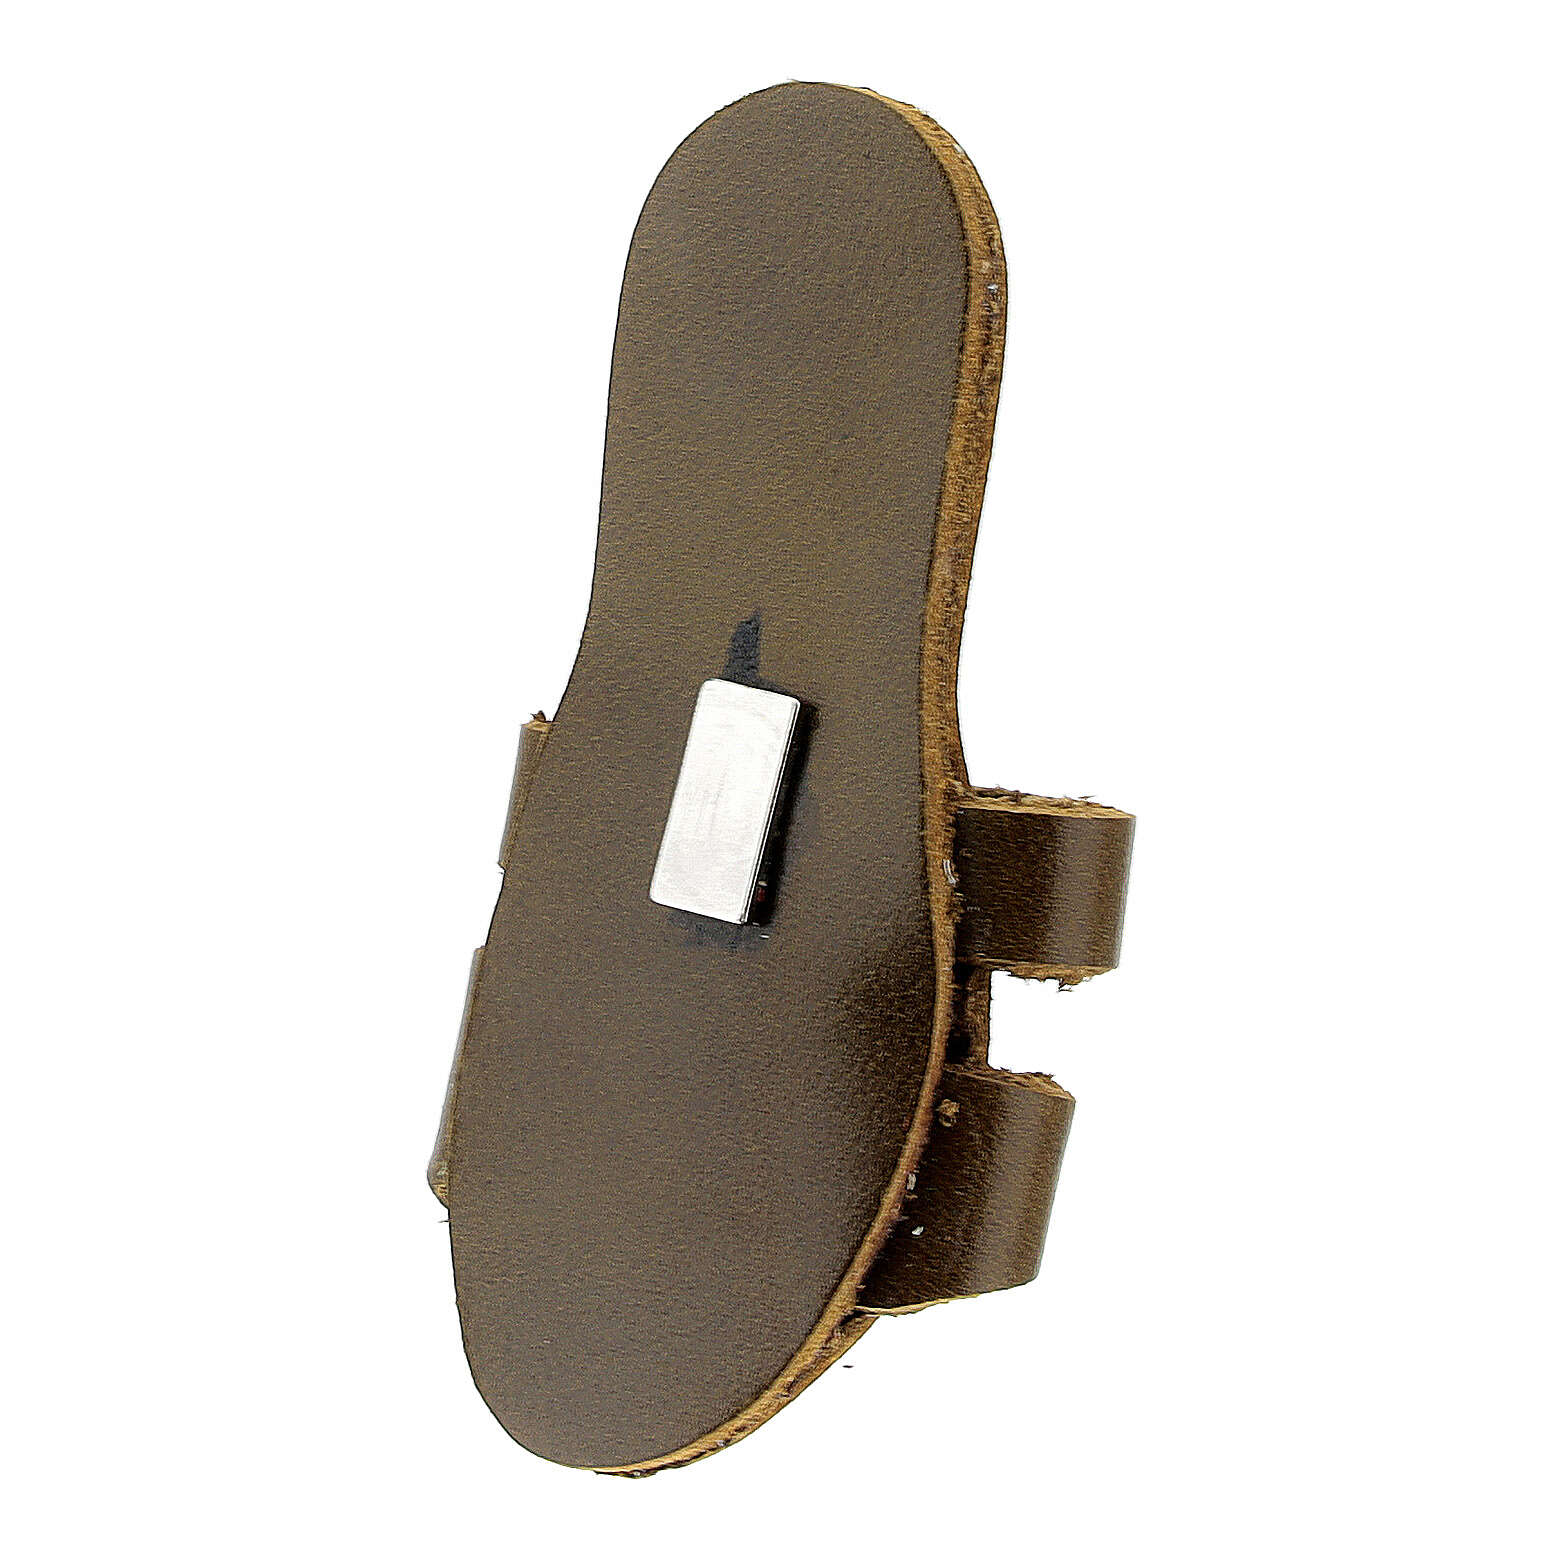 Franciscan sandal magnet with Tau real leather 3